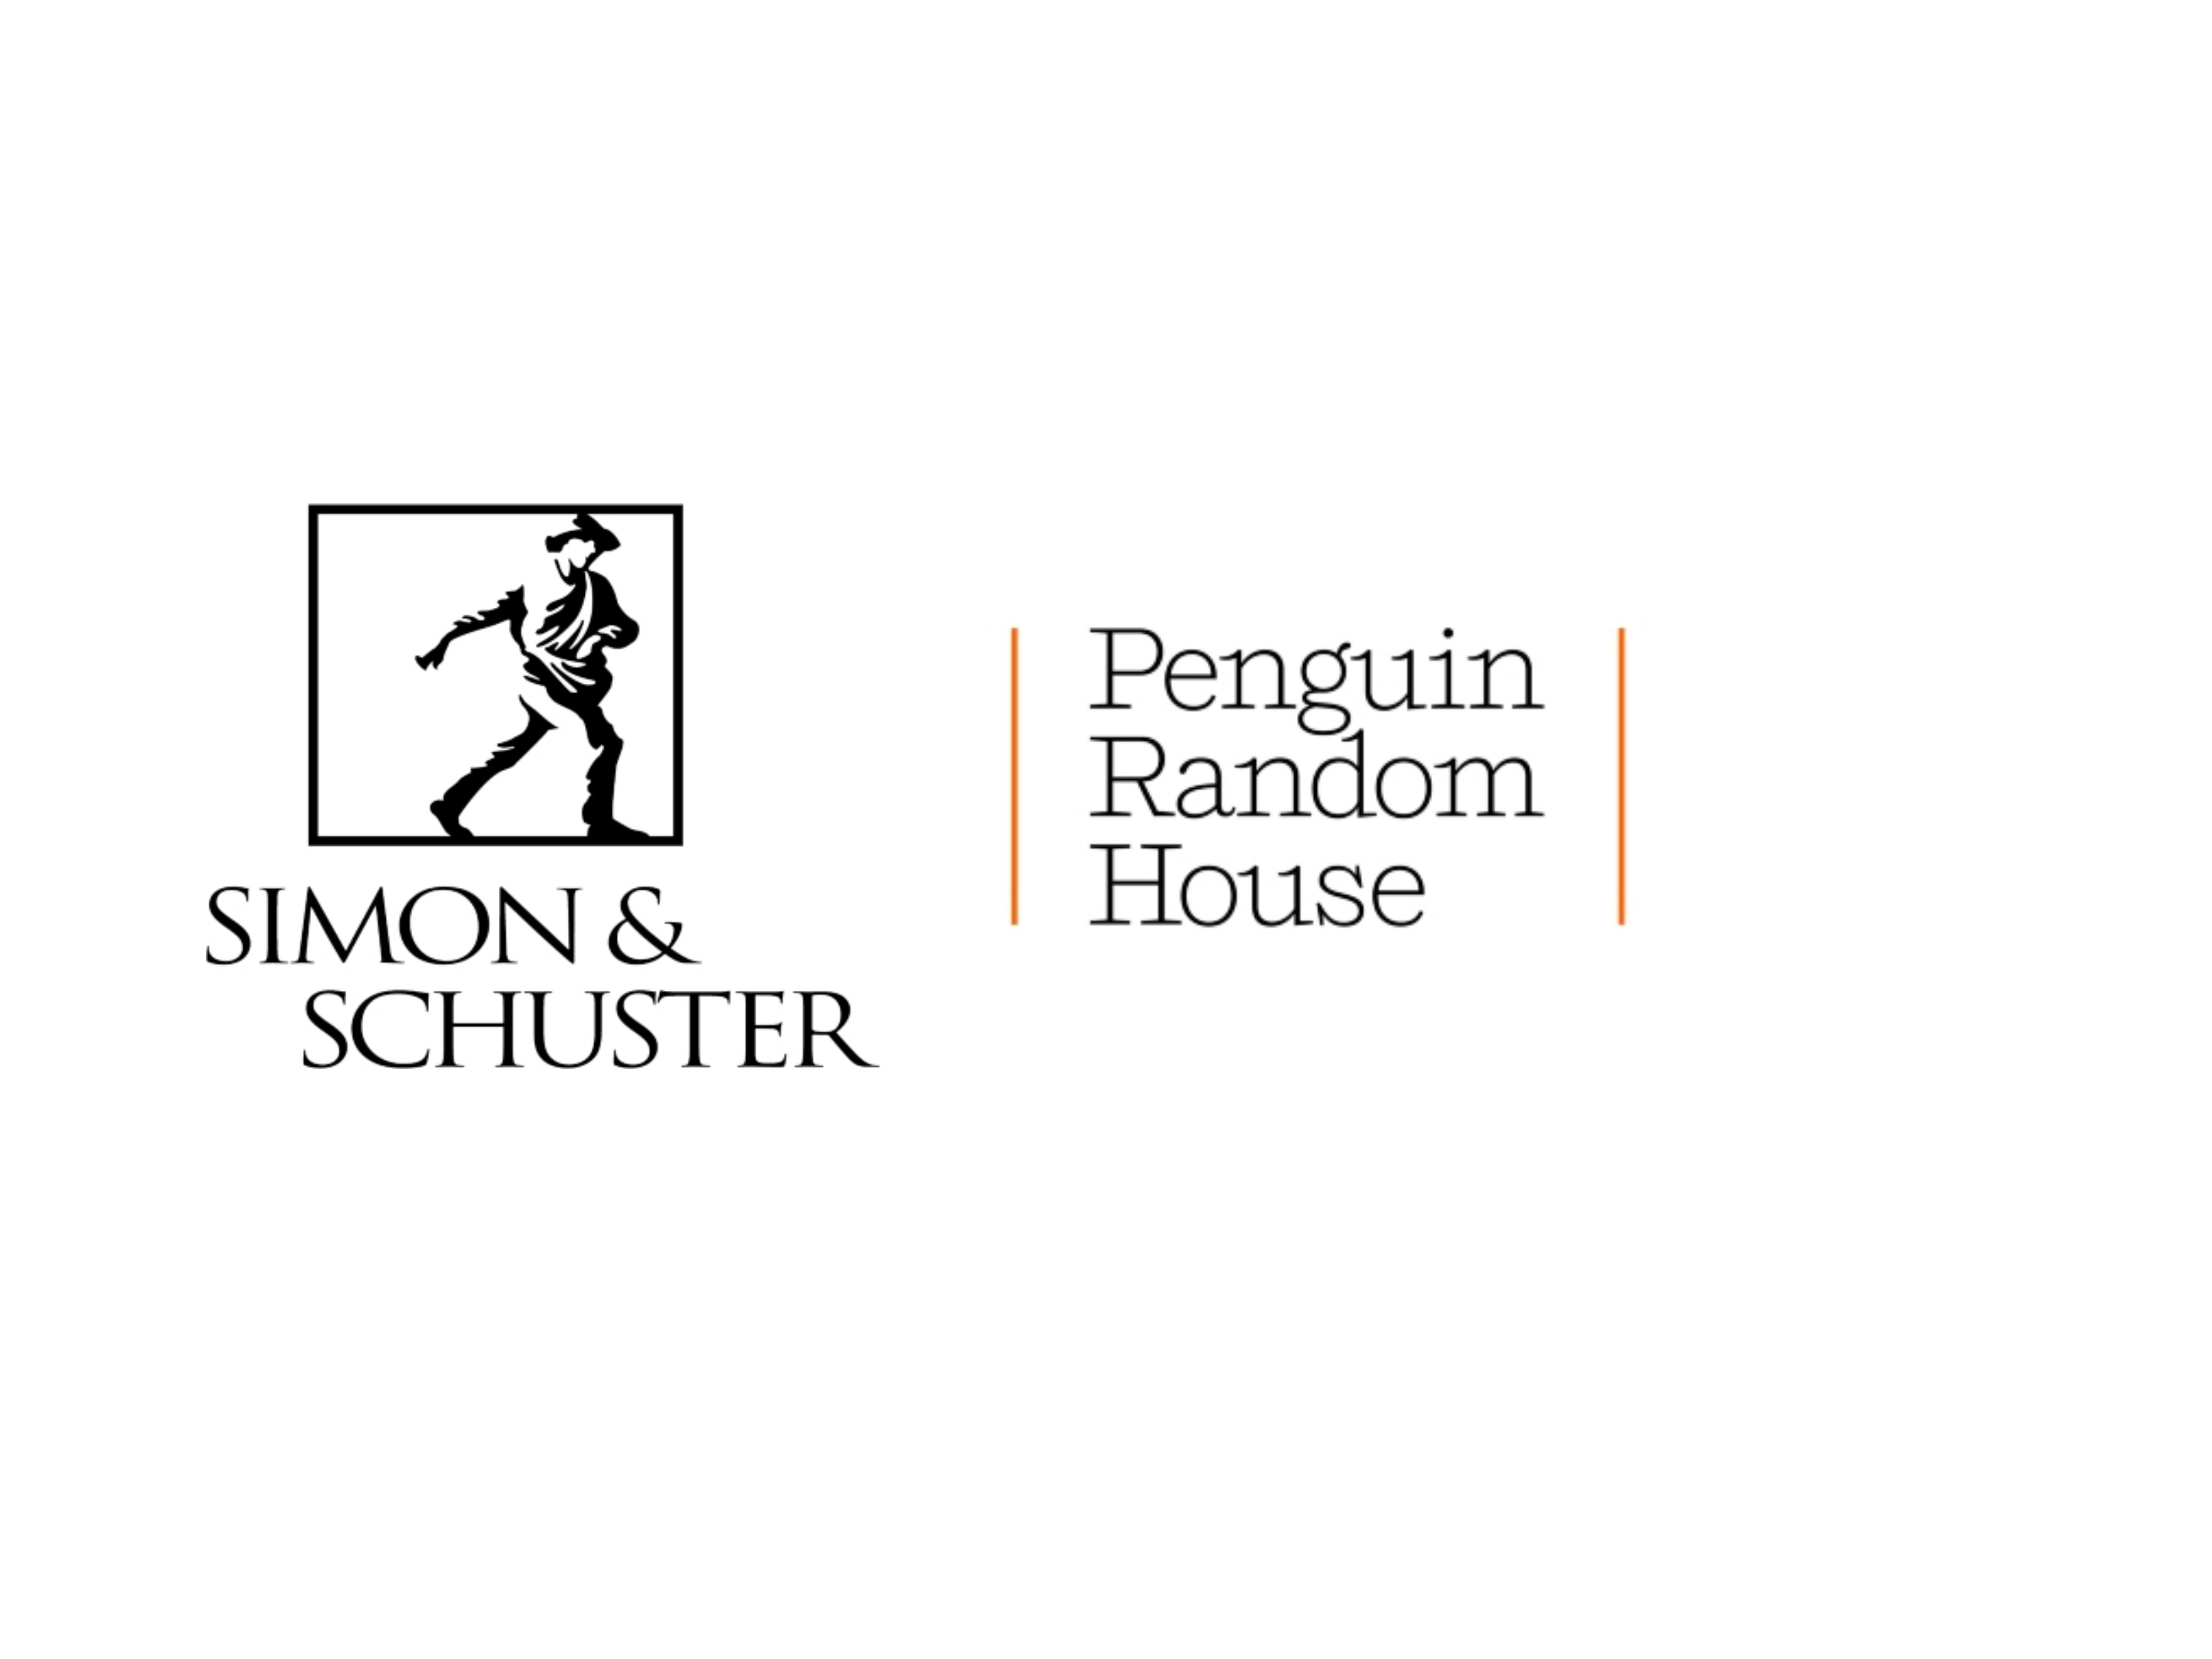 Penguin Random House To Acquire Simon & Schuster | Library Journal